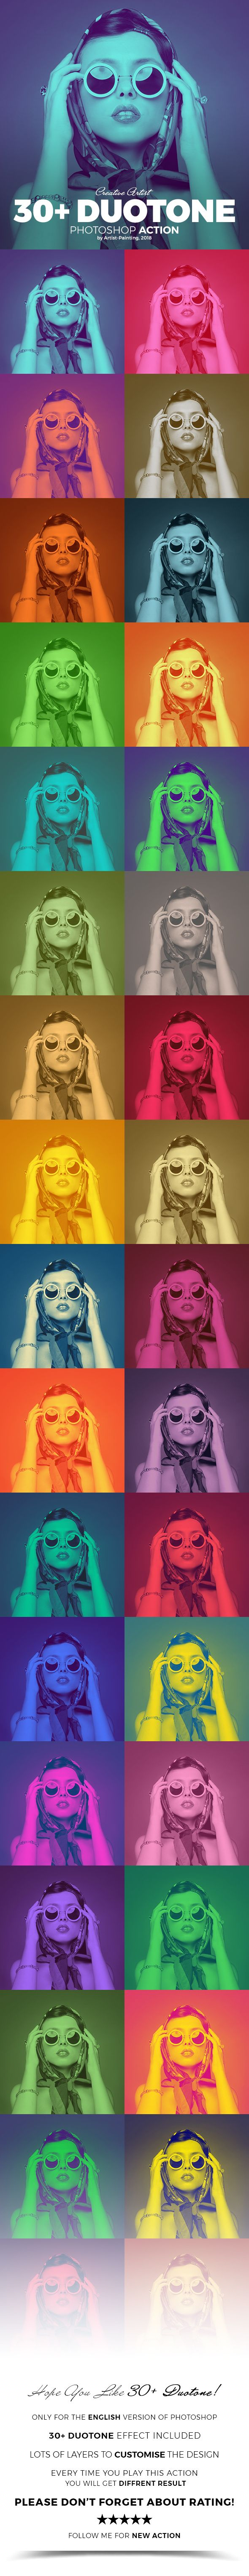 30+ Duotone Photoshop Action - Photo Effects Actions